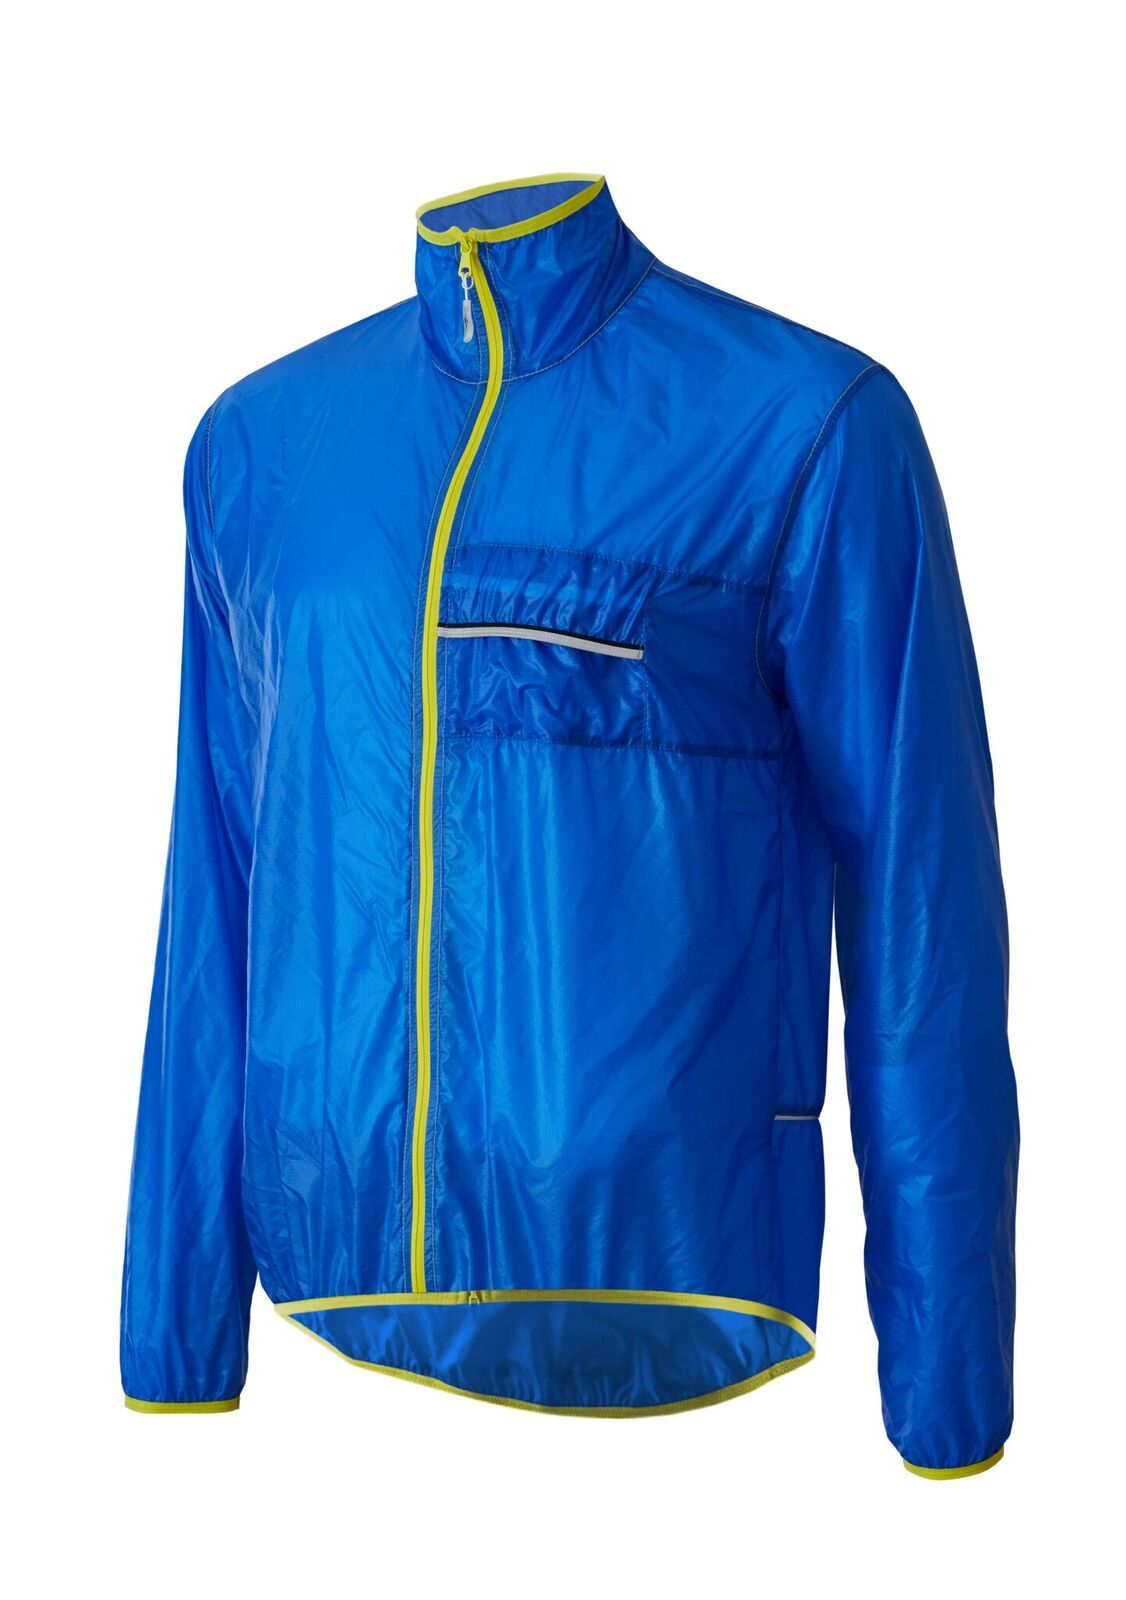 Thonimara Speed Jacket in Blau